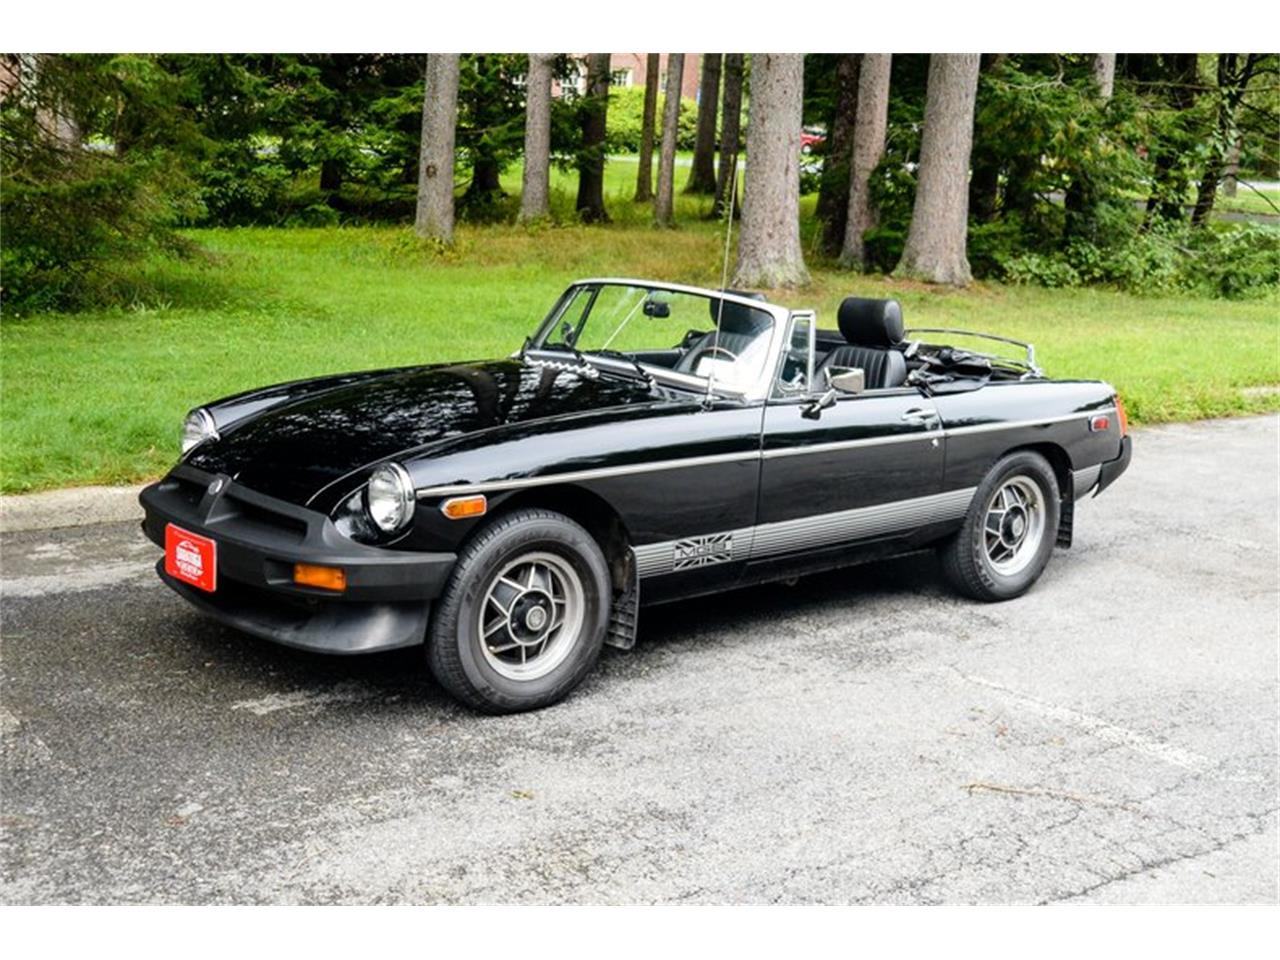 Large Picture of 1979 MG MGB Auction Vehicle Offered by Saratoga Auto Auction - R18T